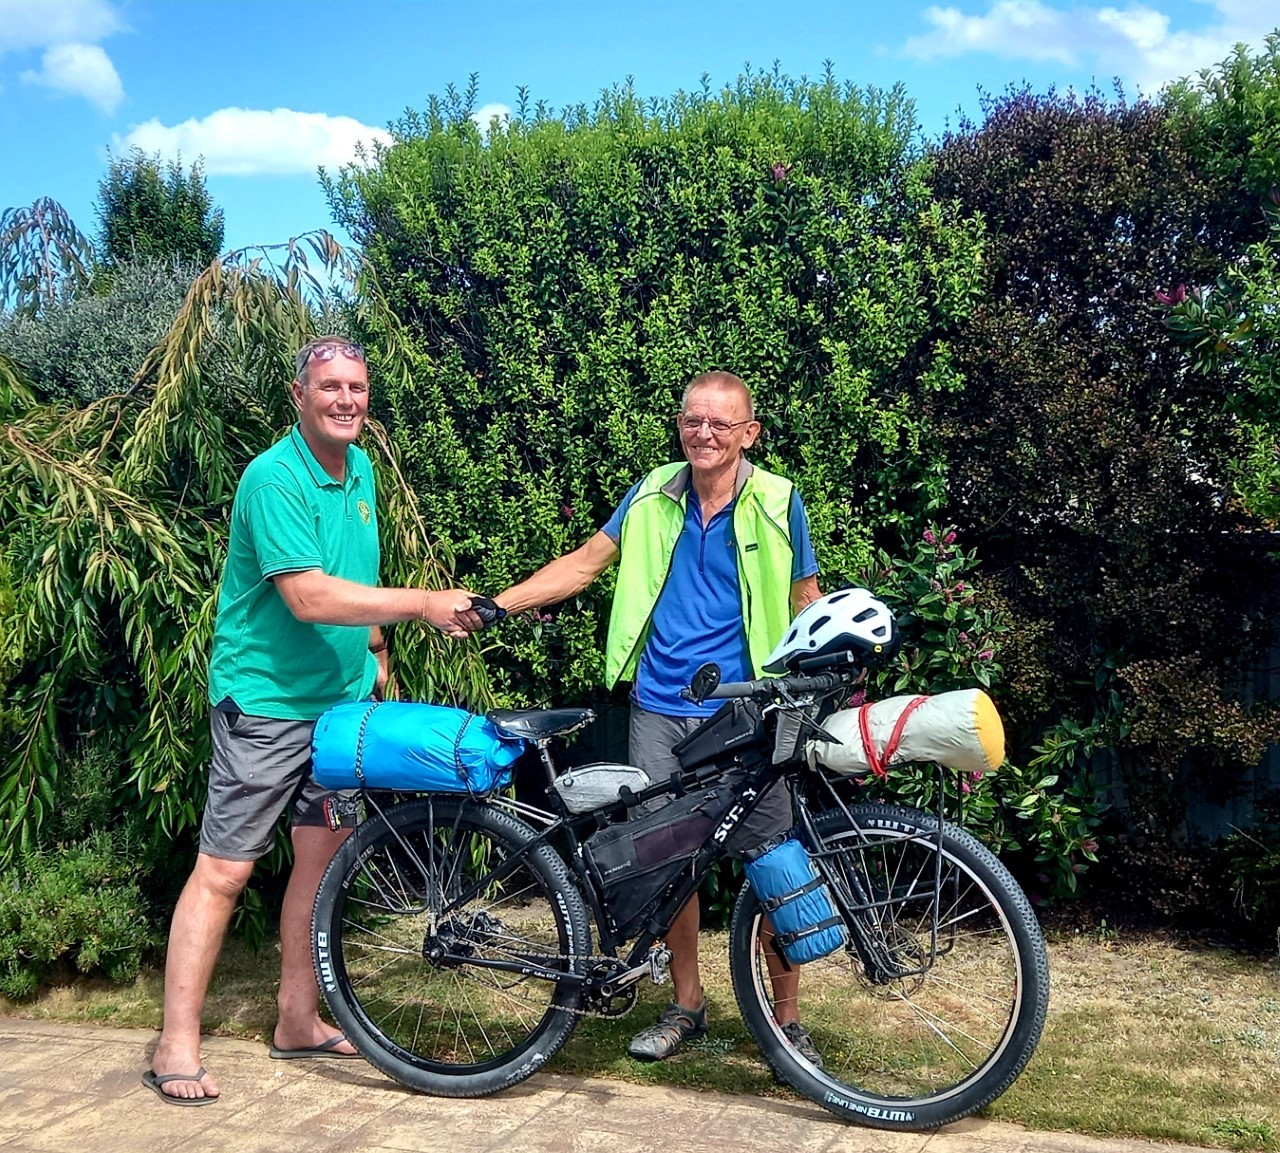 nzherald.co.nz - Greenmeadows Rotary member Alan White cycles for charity